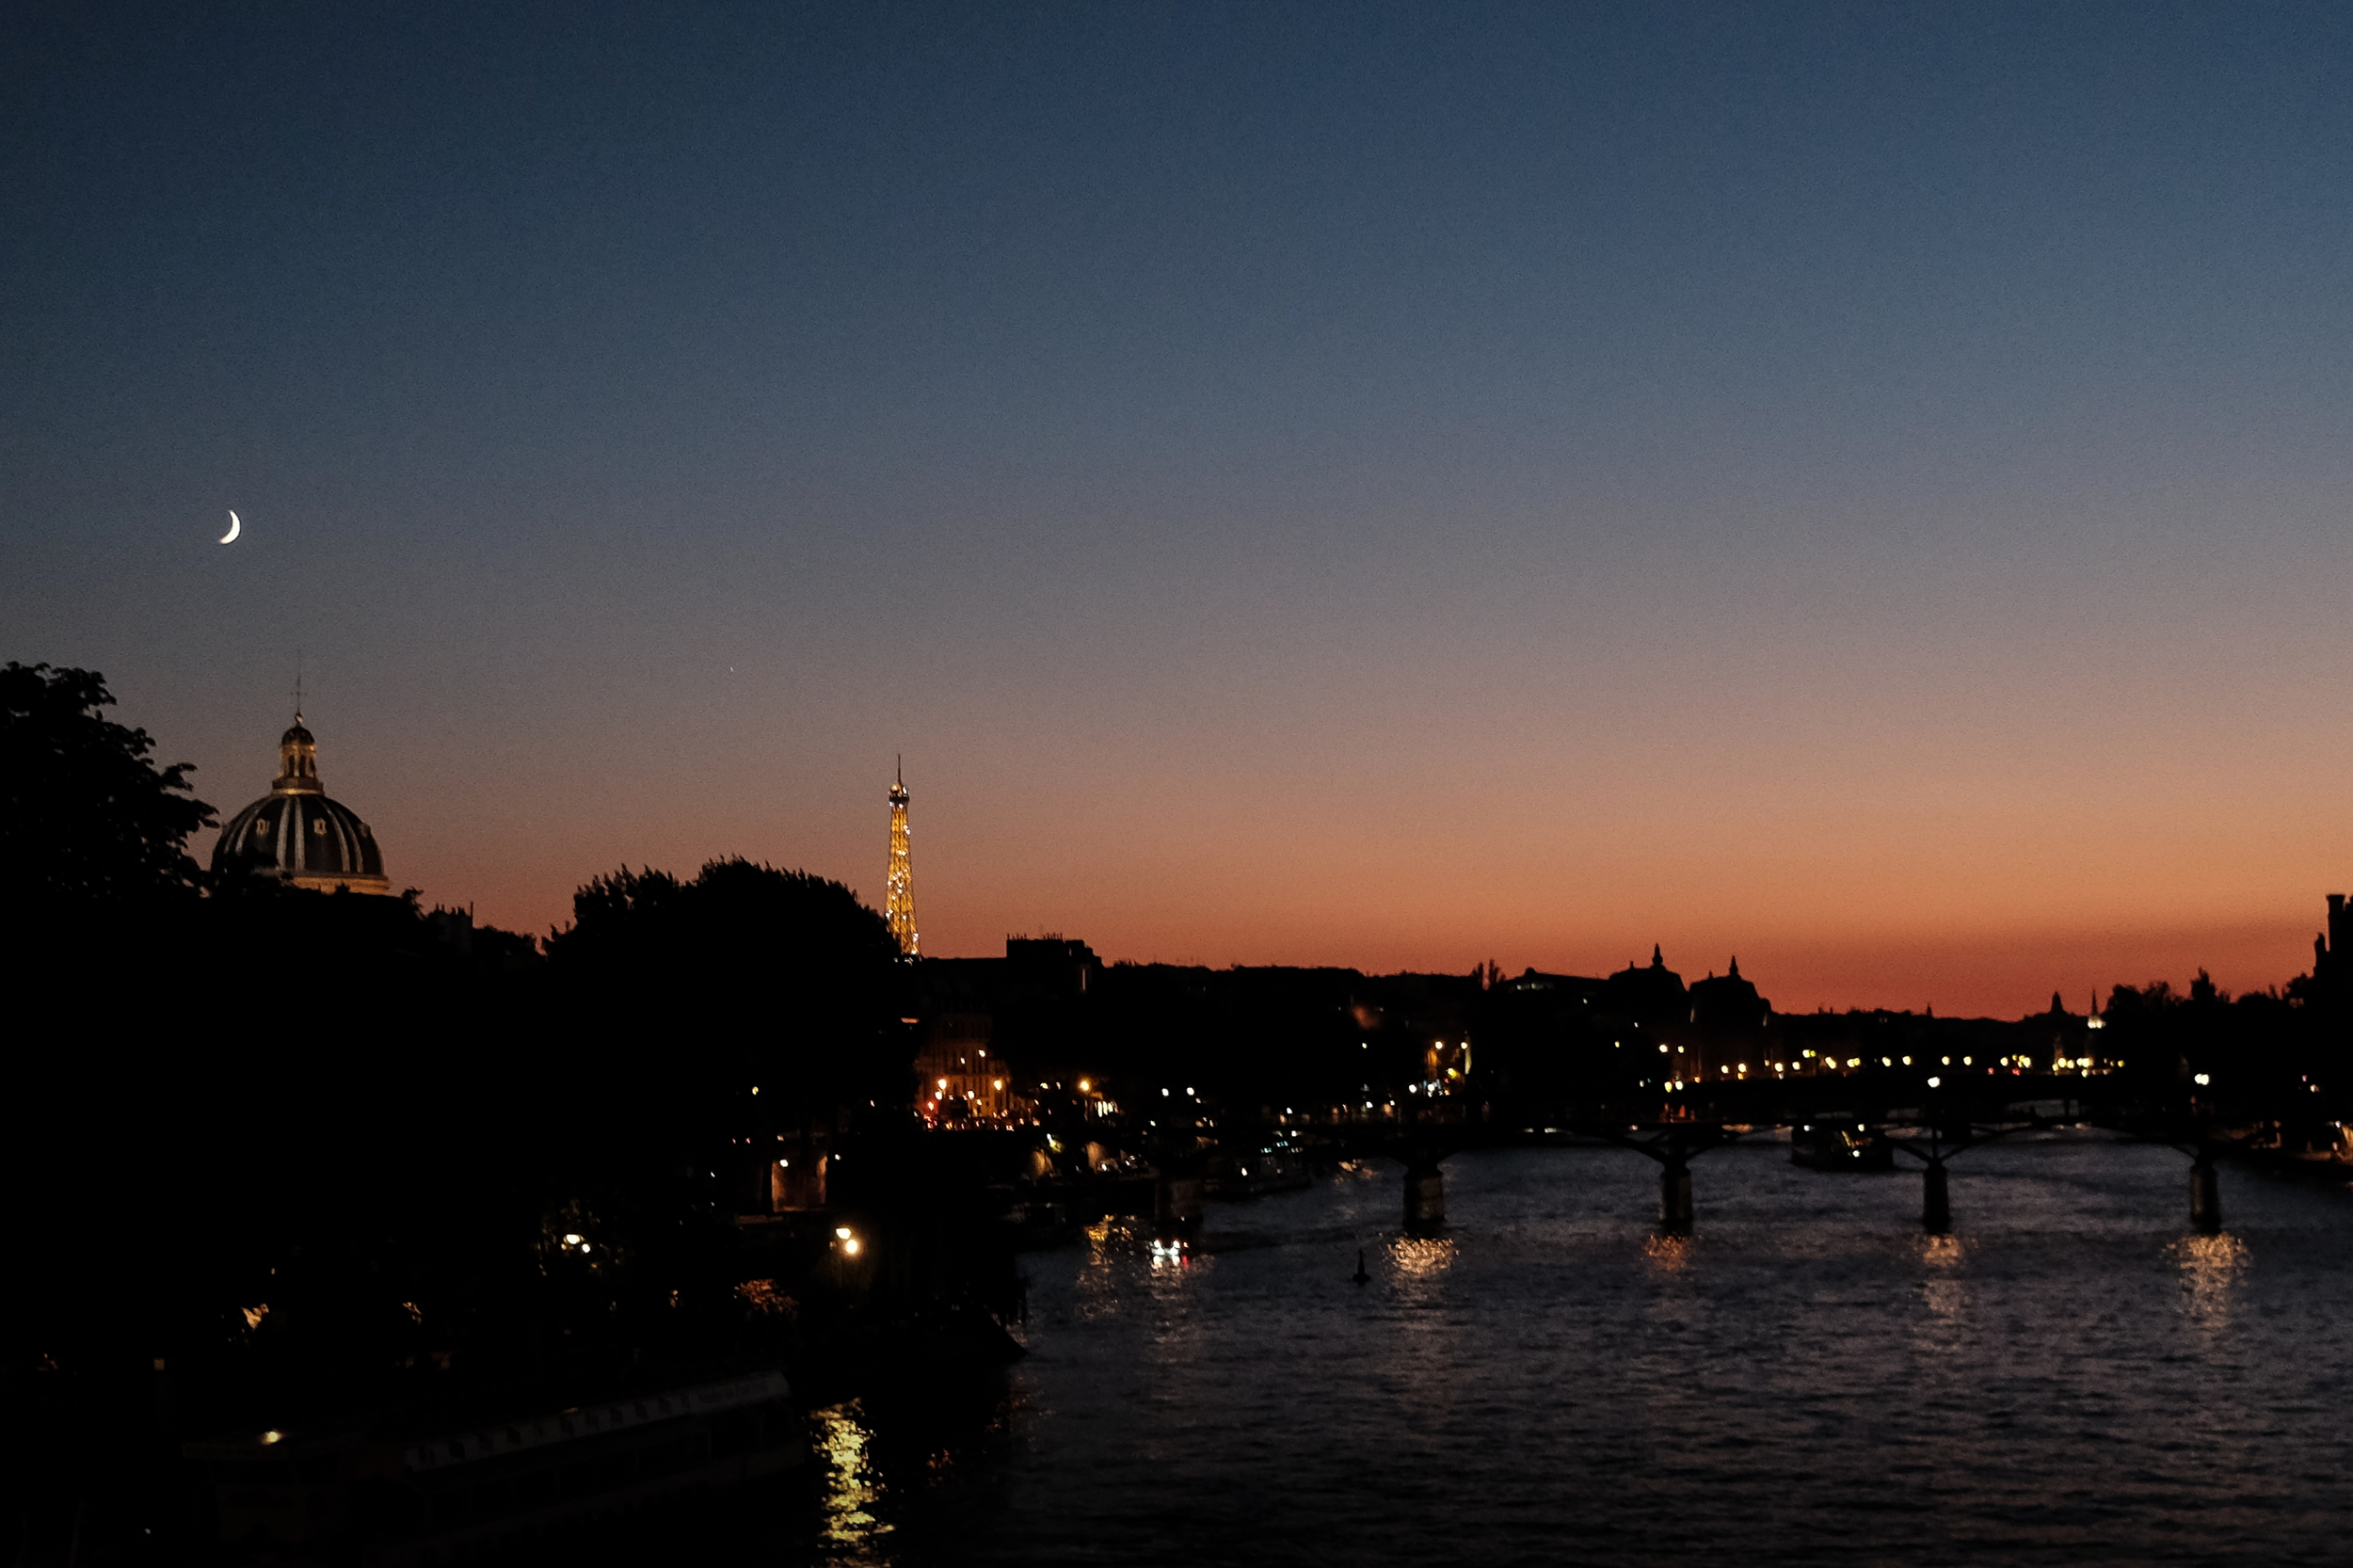 32. Pont Neuf, Paris, France